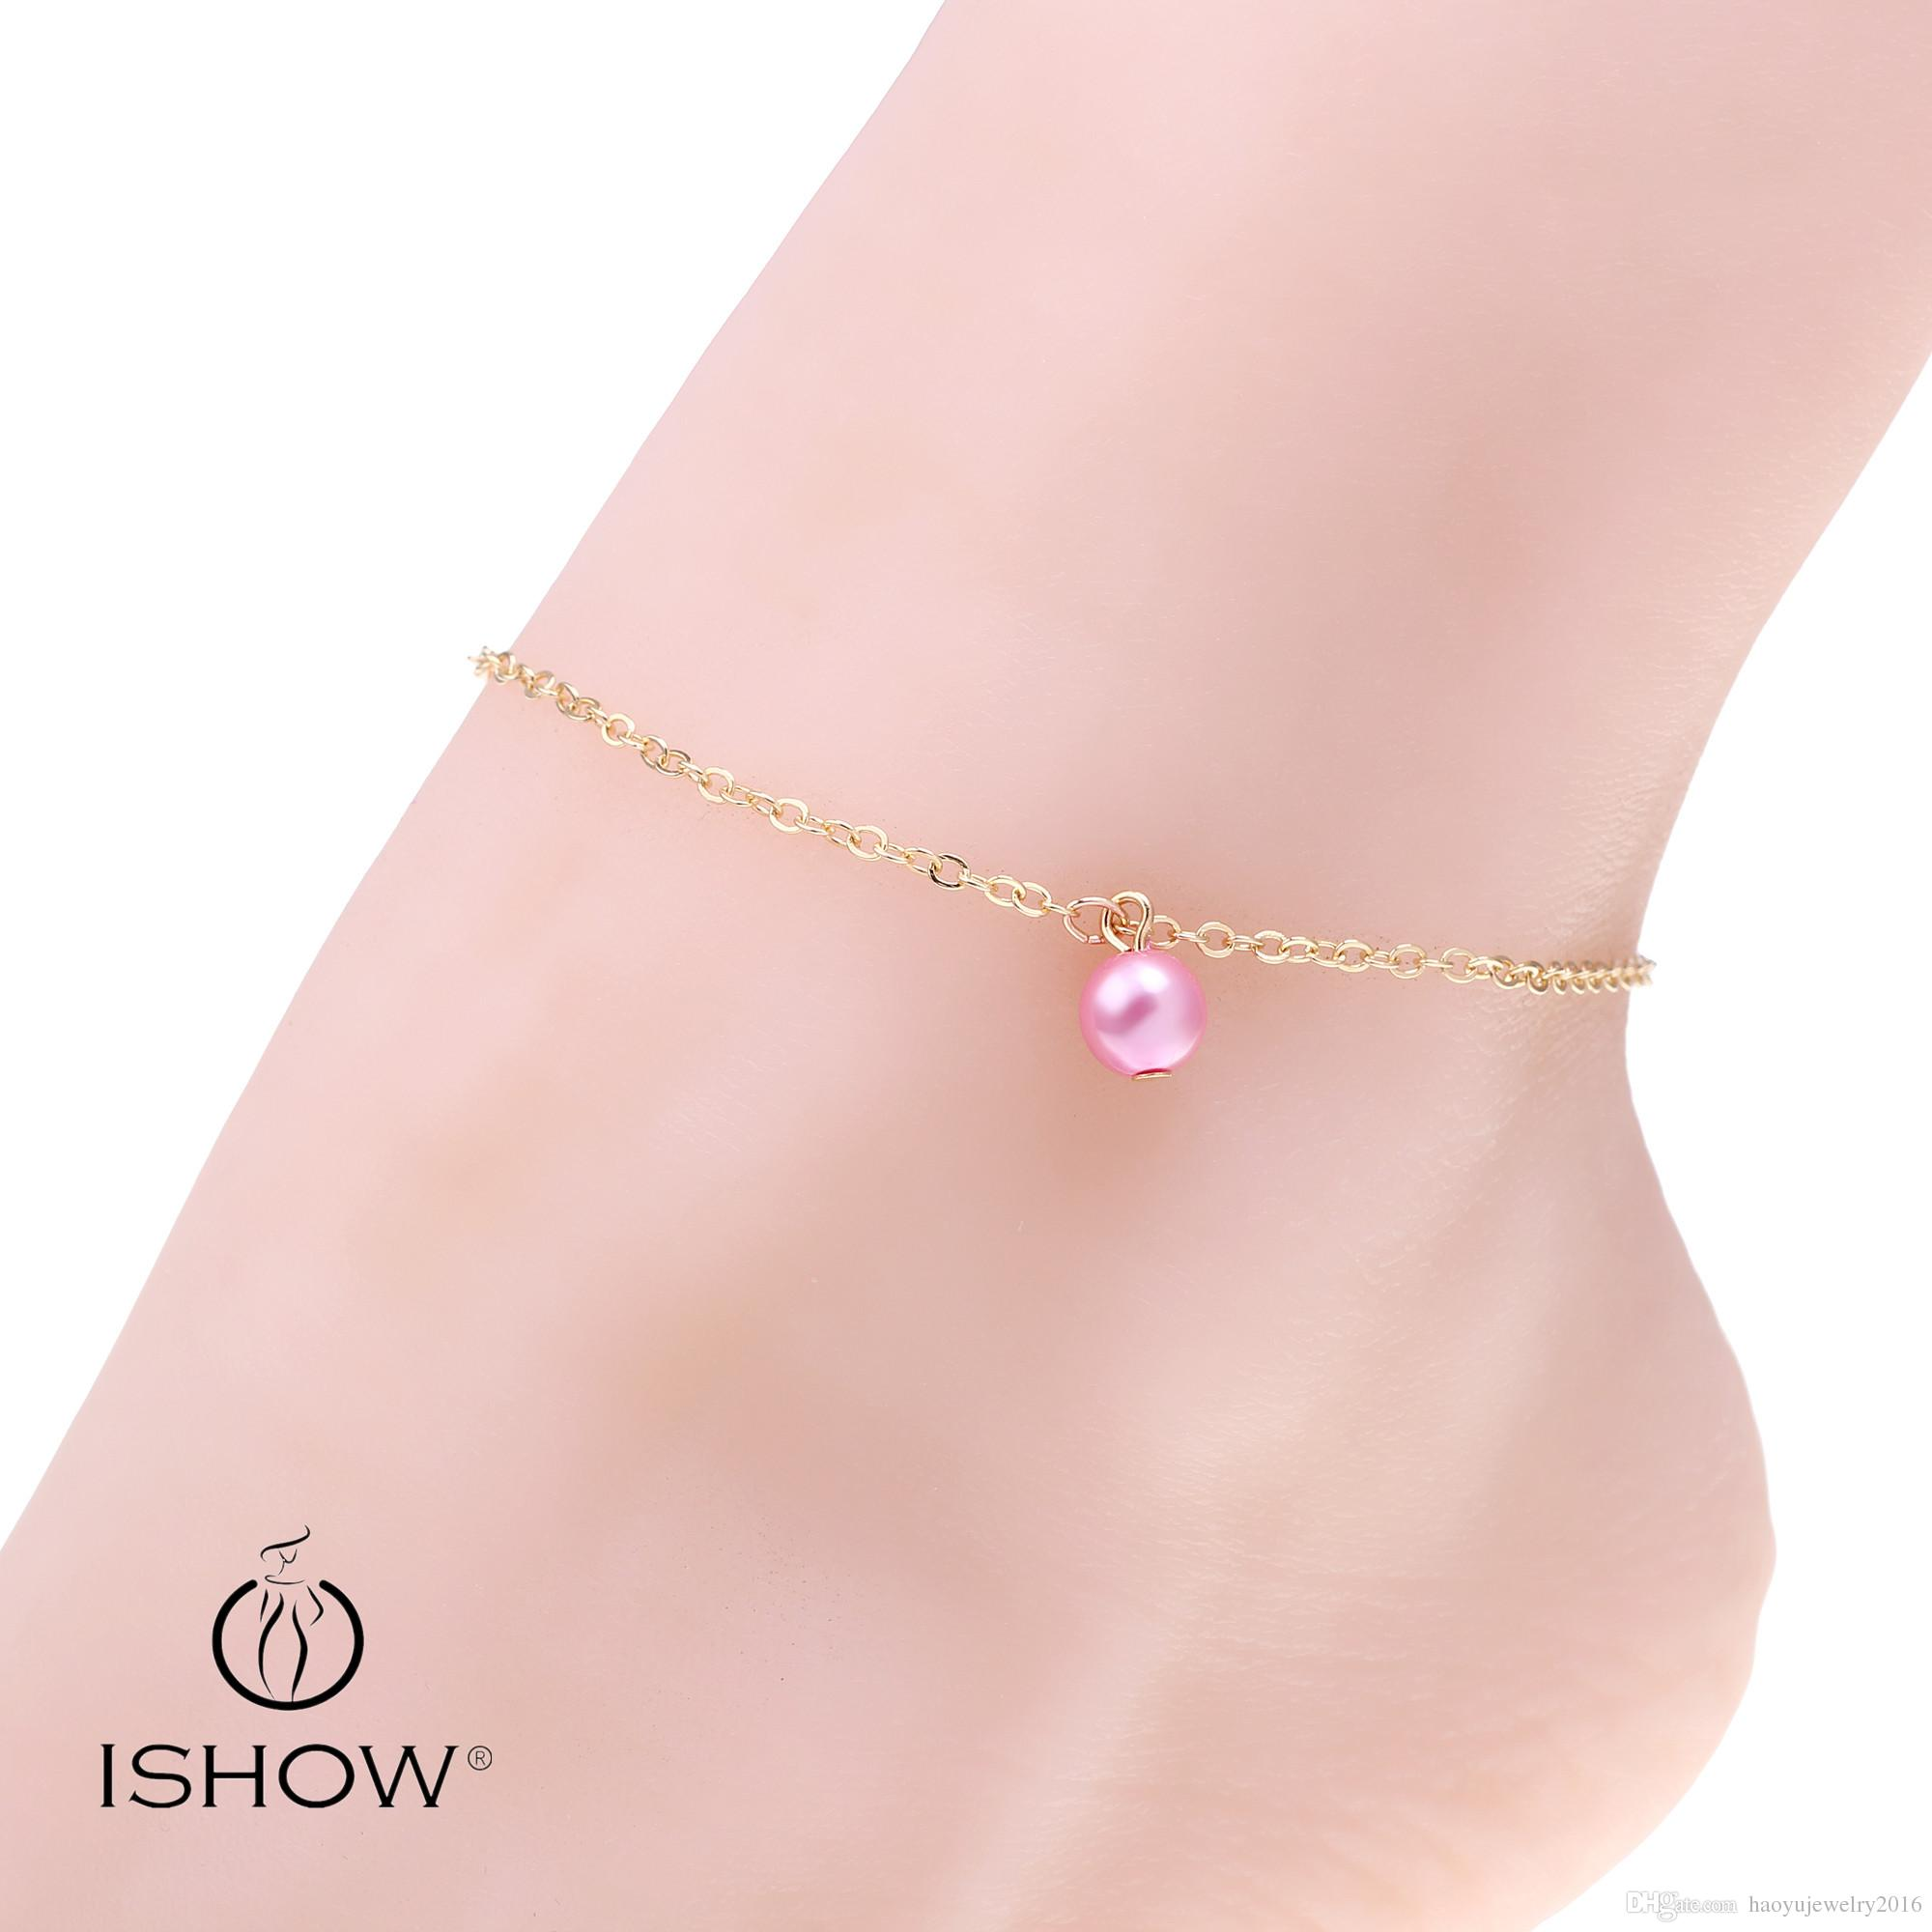 anklet iroff img jewelers bracelet jeweler son best tennis gold shop bracelets and diamond white alpharetta